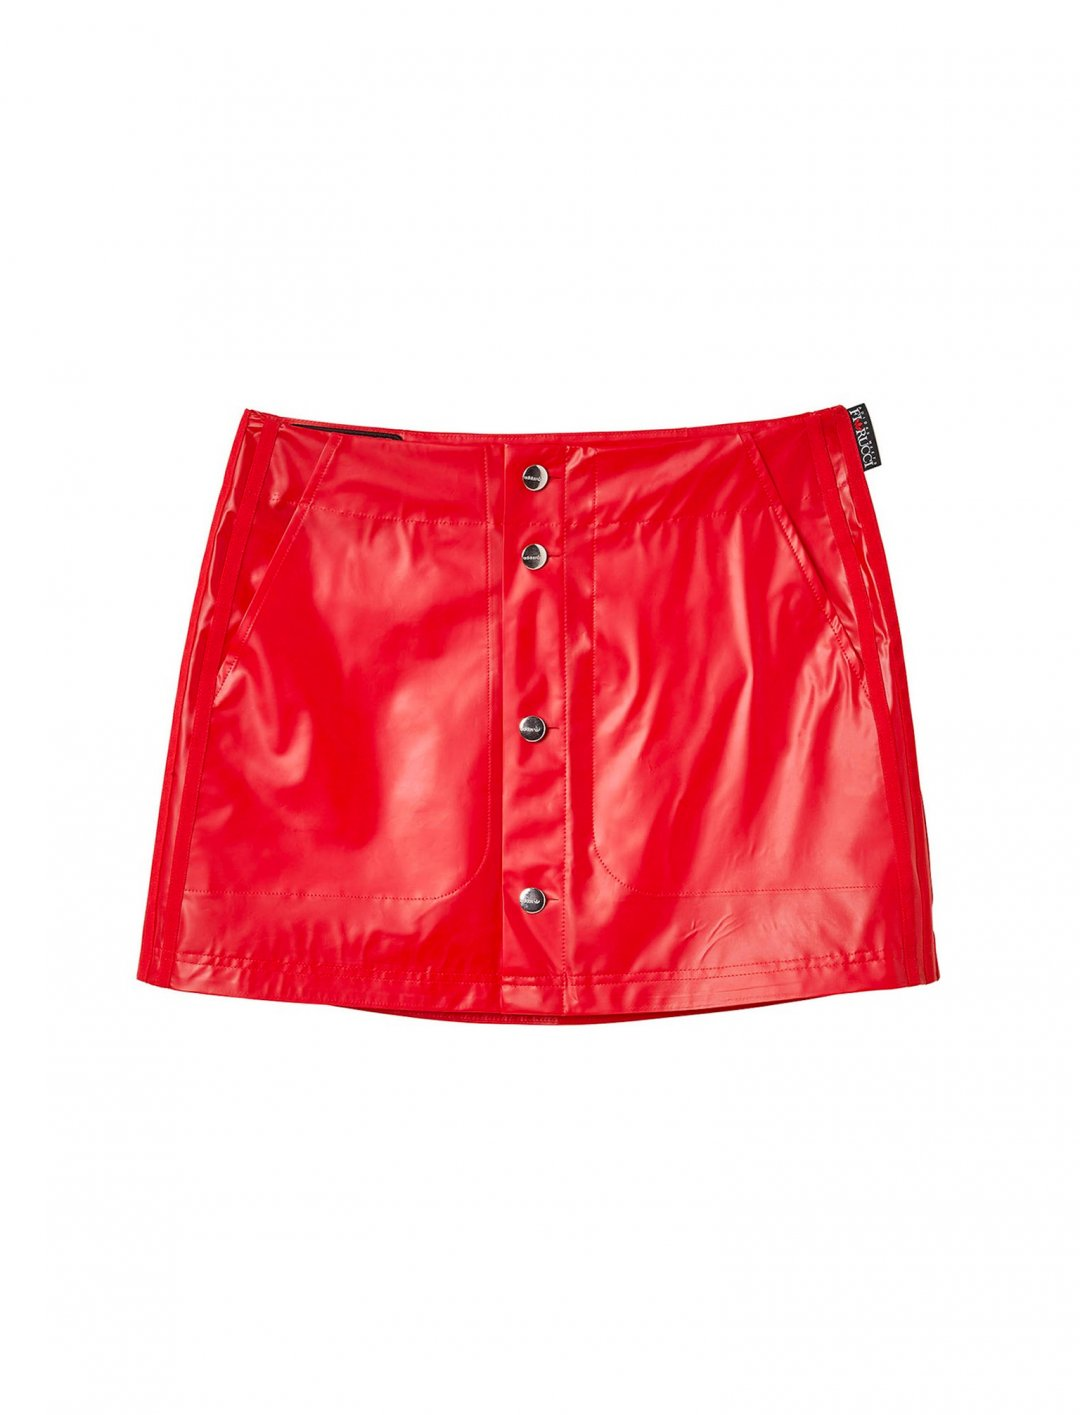 "Fiorucci Mini Skirt {""id"":5,""product_section_id"":1,""name"":""Clothing"",""order"":5} Adidas x Fiorucci"